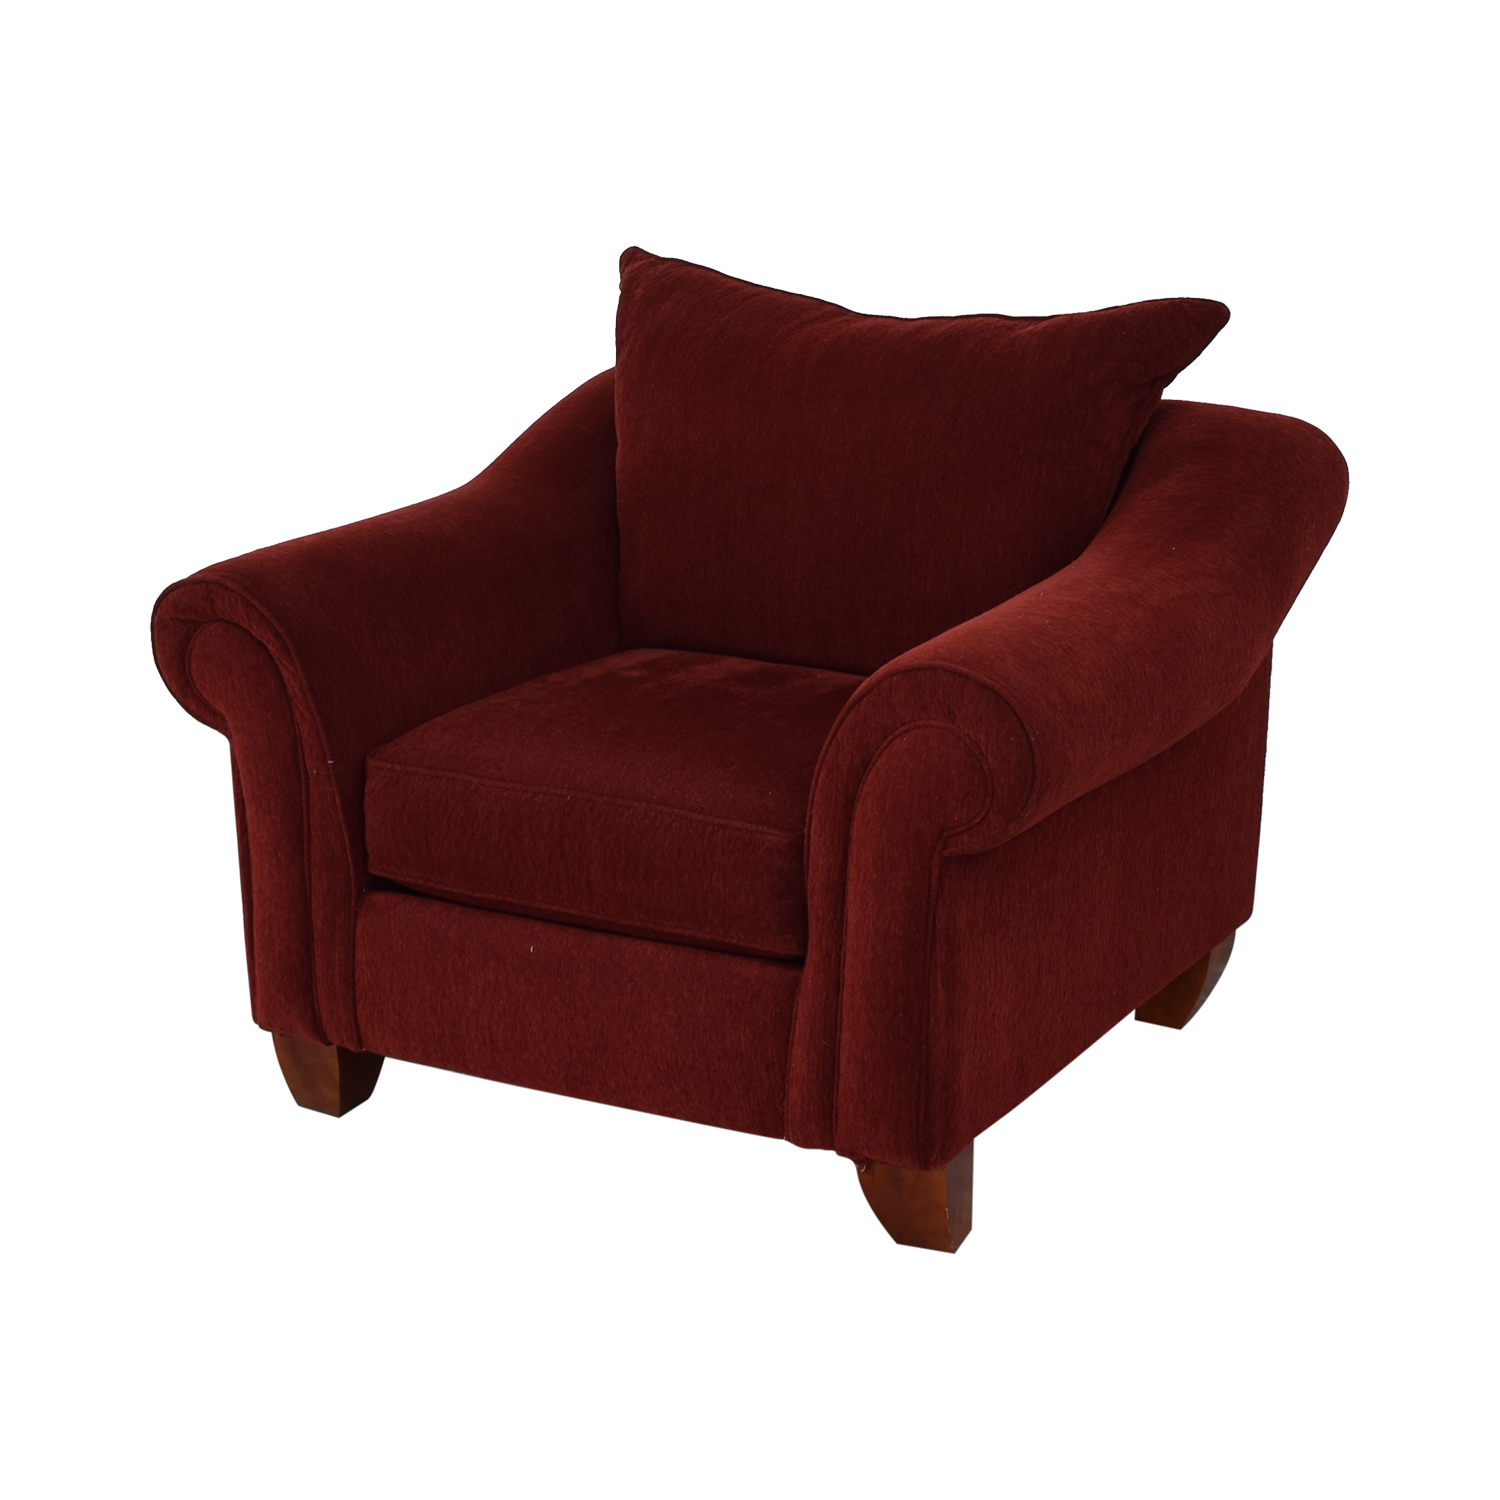 Raymour & Flanigan Raymour & Flanigan Red Arm Accent Chair coupon